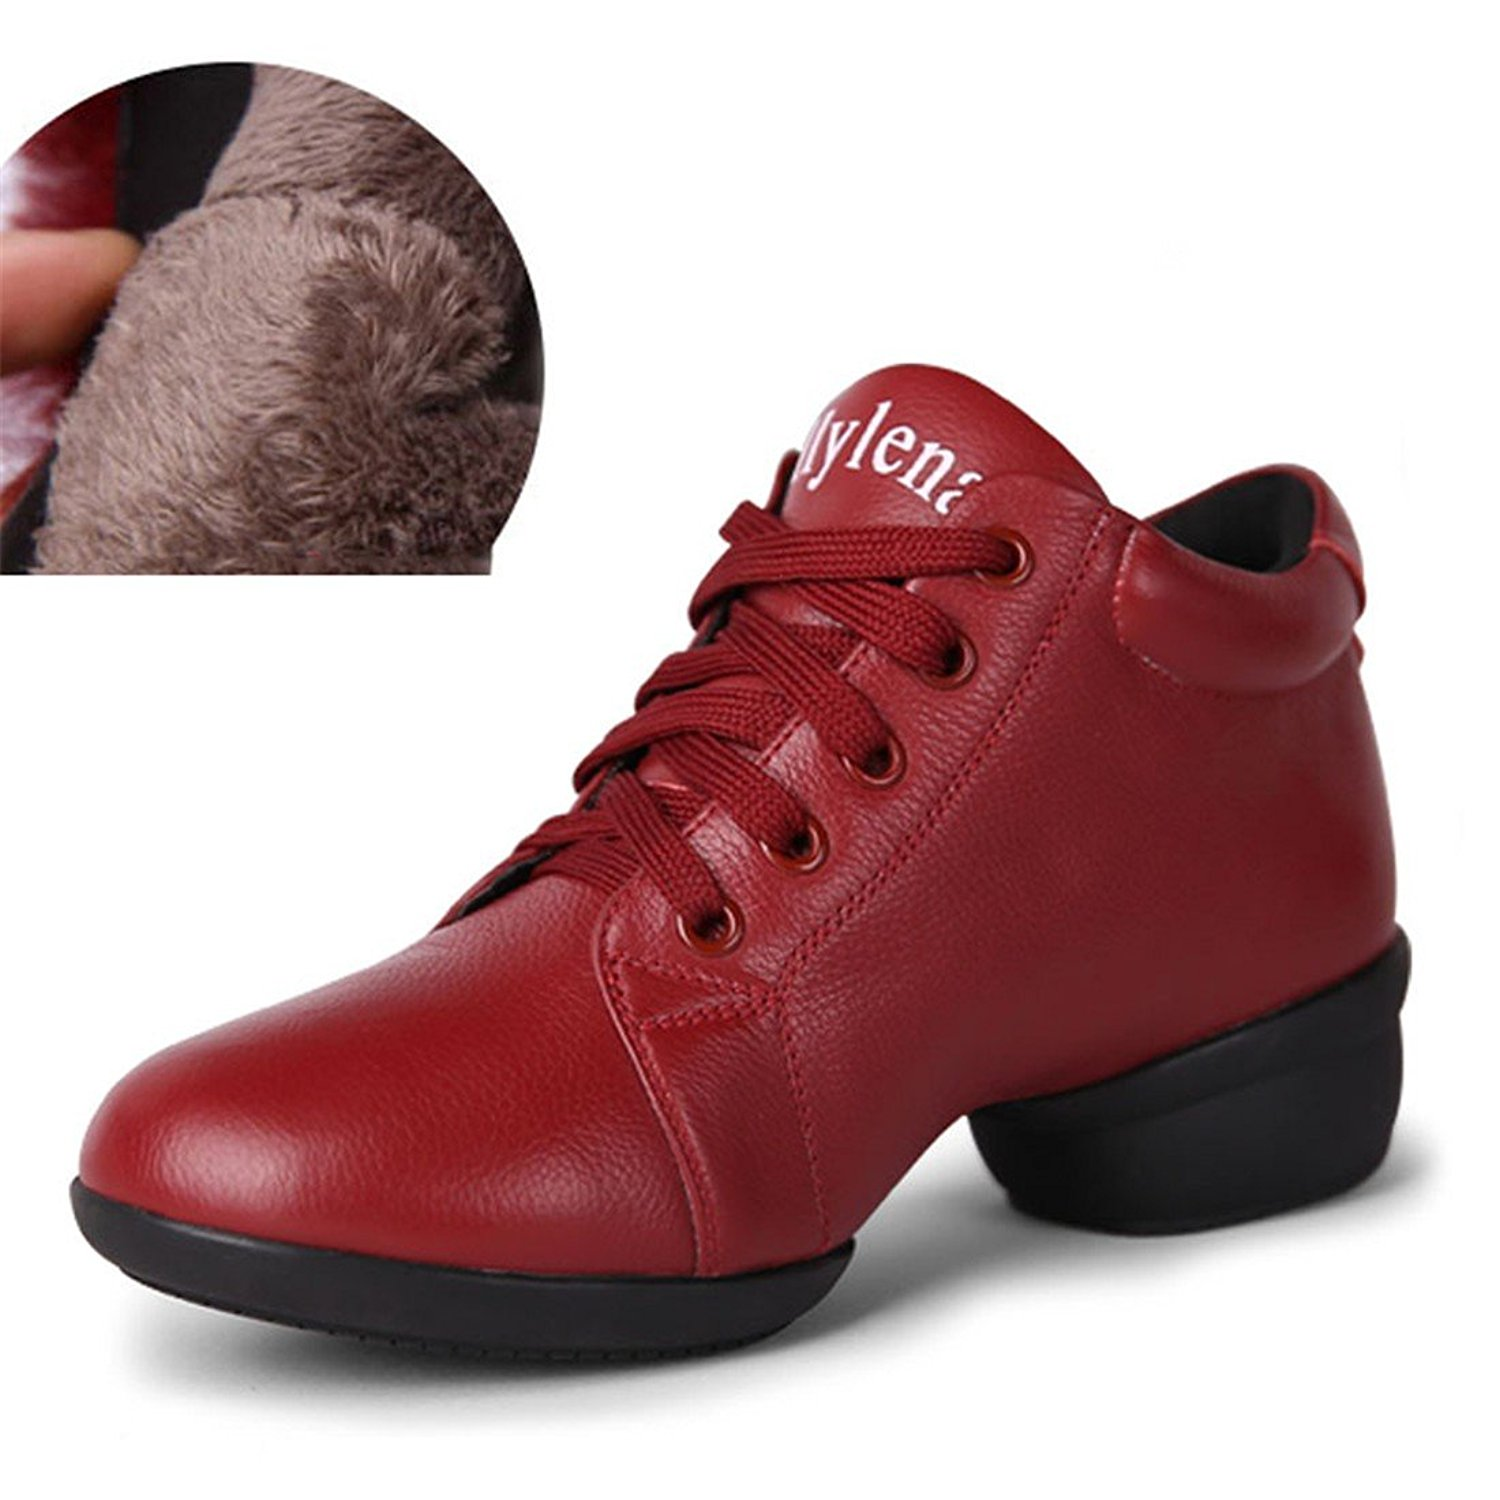 WXMDDN The Girl Latin Dance Shoes Big Red Dance Shoes Dance Shoes Soft Bottom Breathable Indoor and Outdoor Dance Shoe